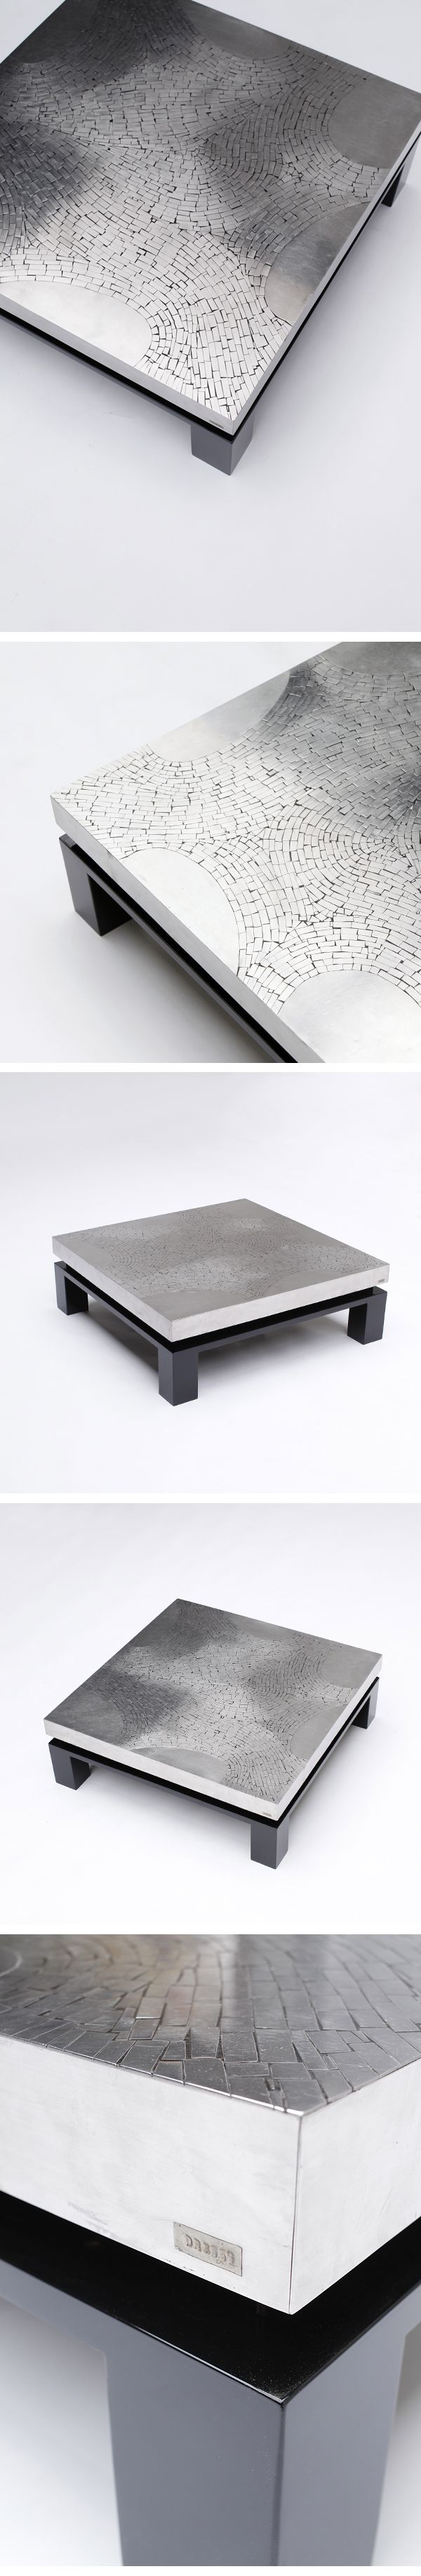 790 best Furnish Coffee Tables images on Pinterest